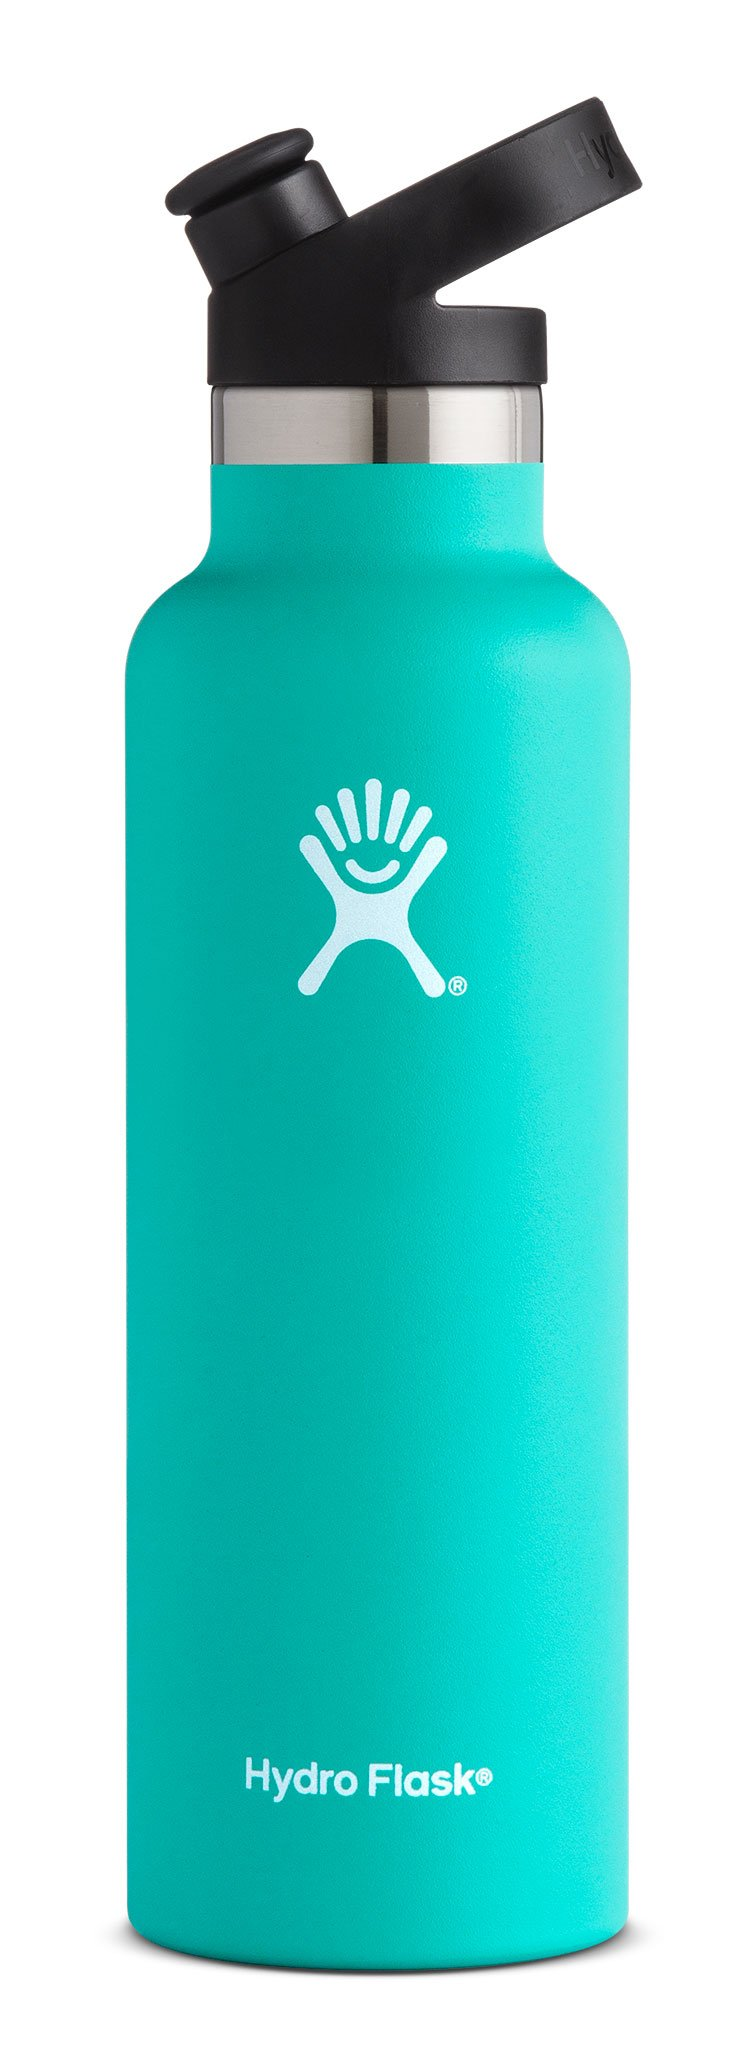 Hydro Flask 21 oz Double Wall Vacuum Insulated Stainless Steel Sports Water Bottle, Standard Mouth with BPA Free Sport Cap, Mint